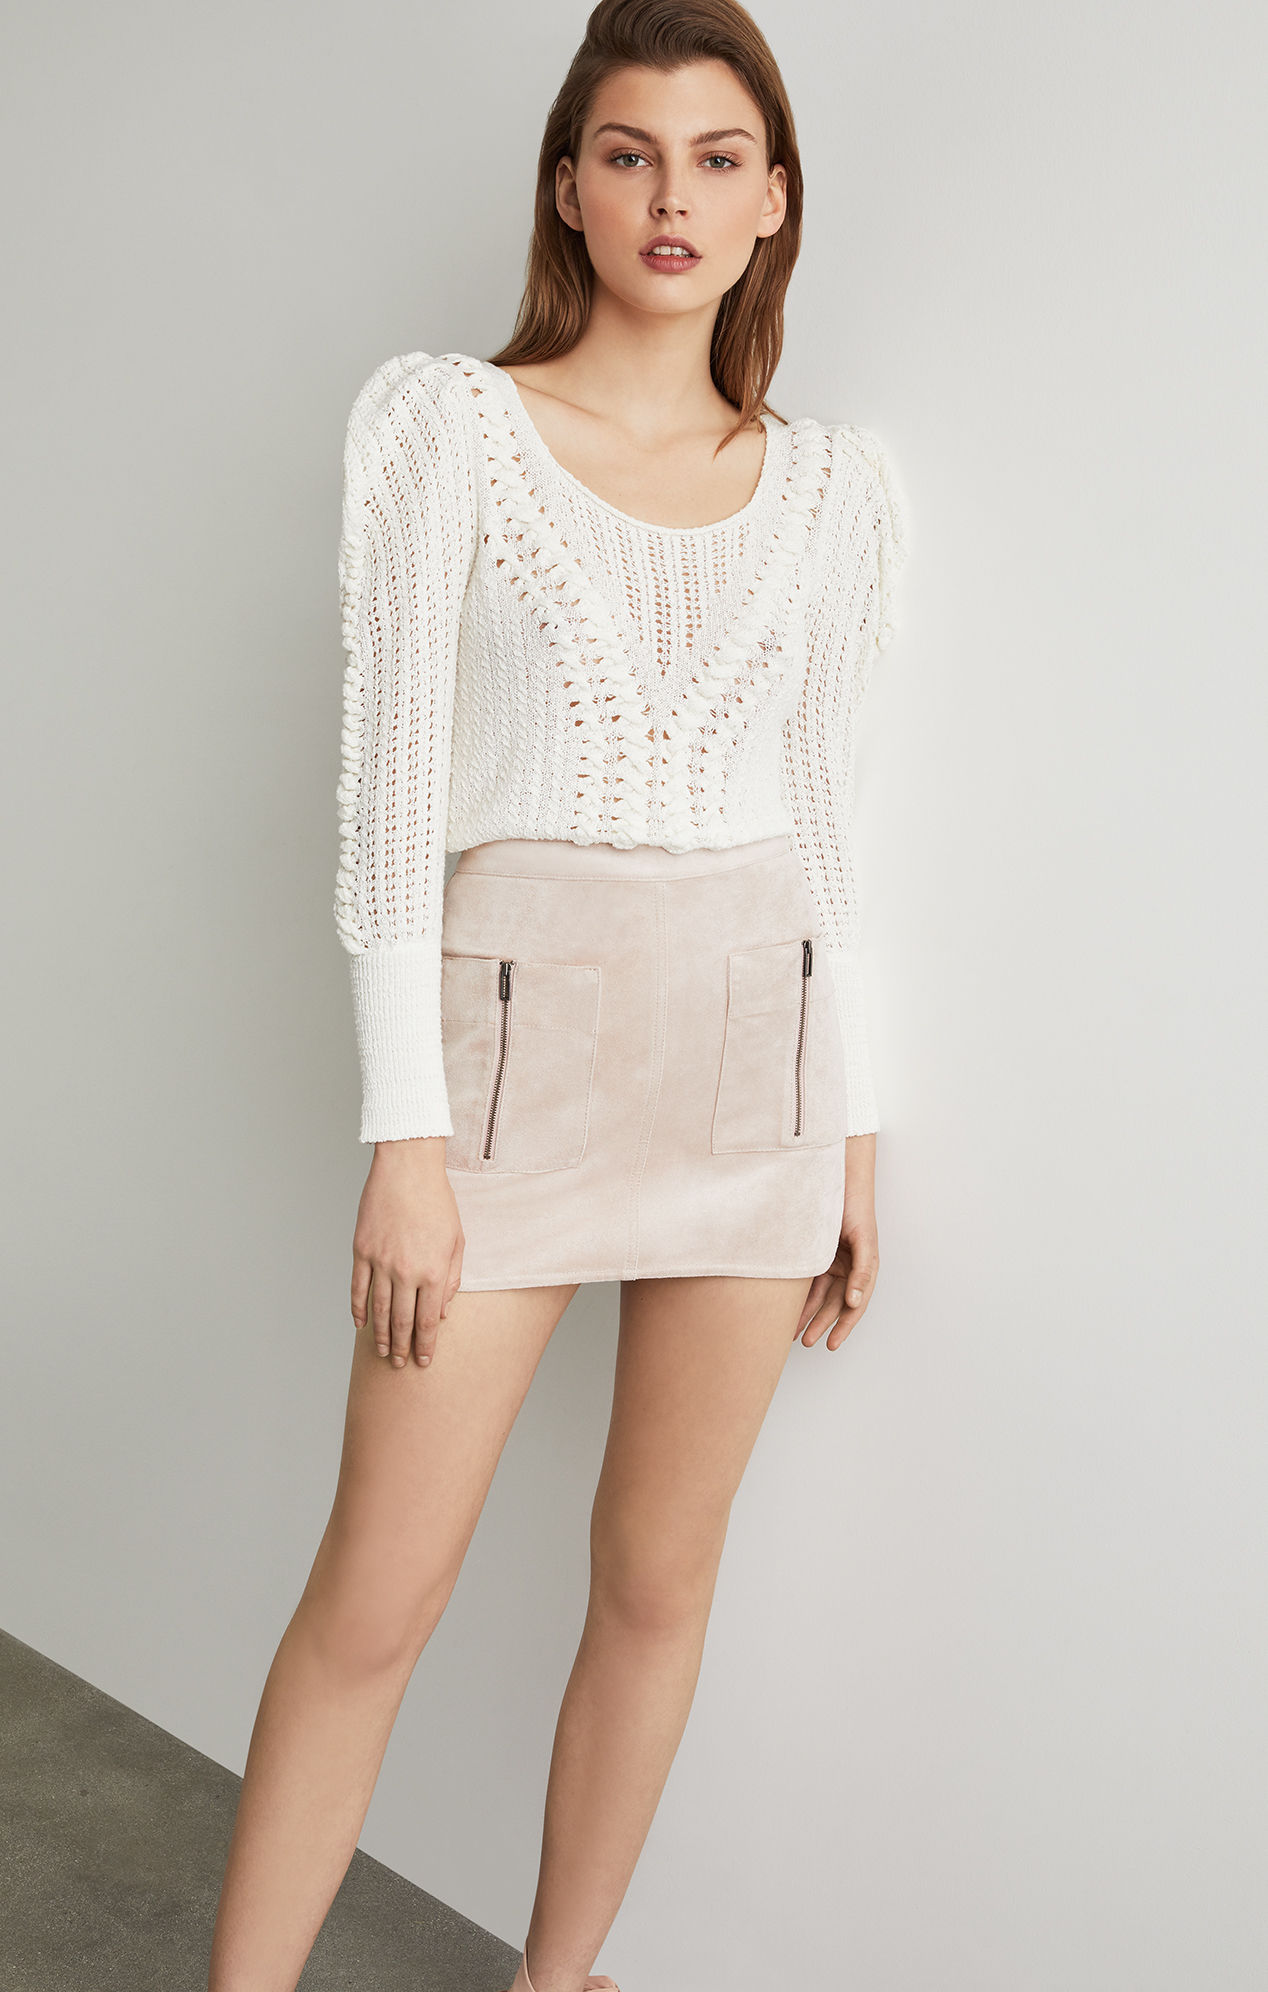 Patch Pocket Faux Suede Skirt - Bare Pink | BCBG.com